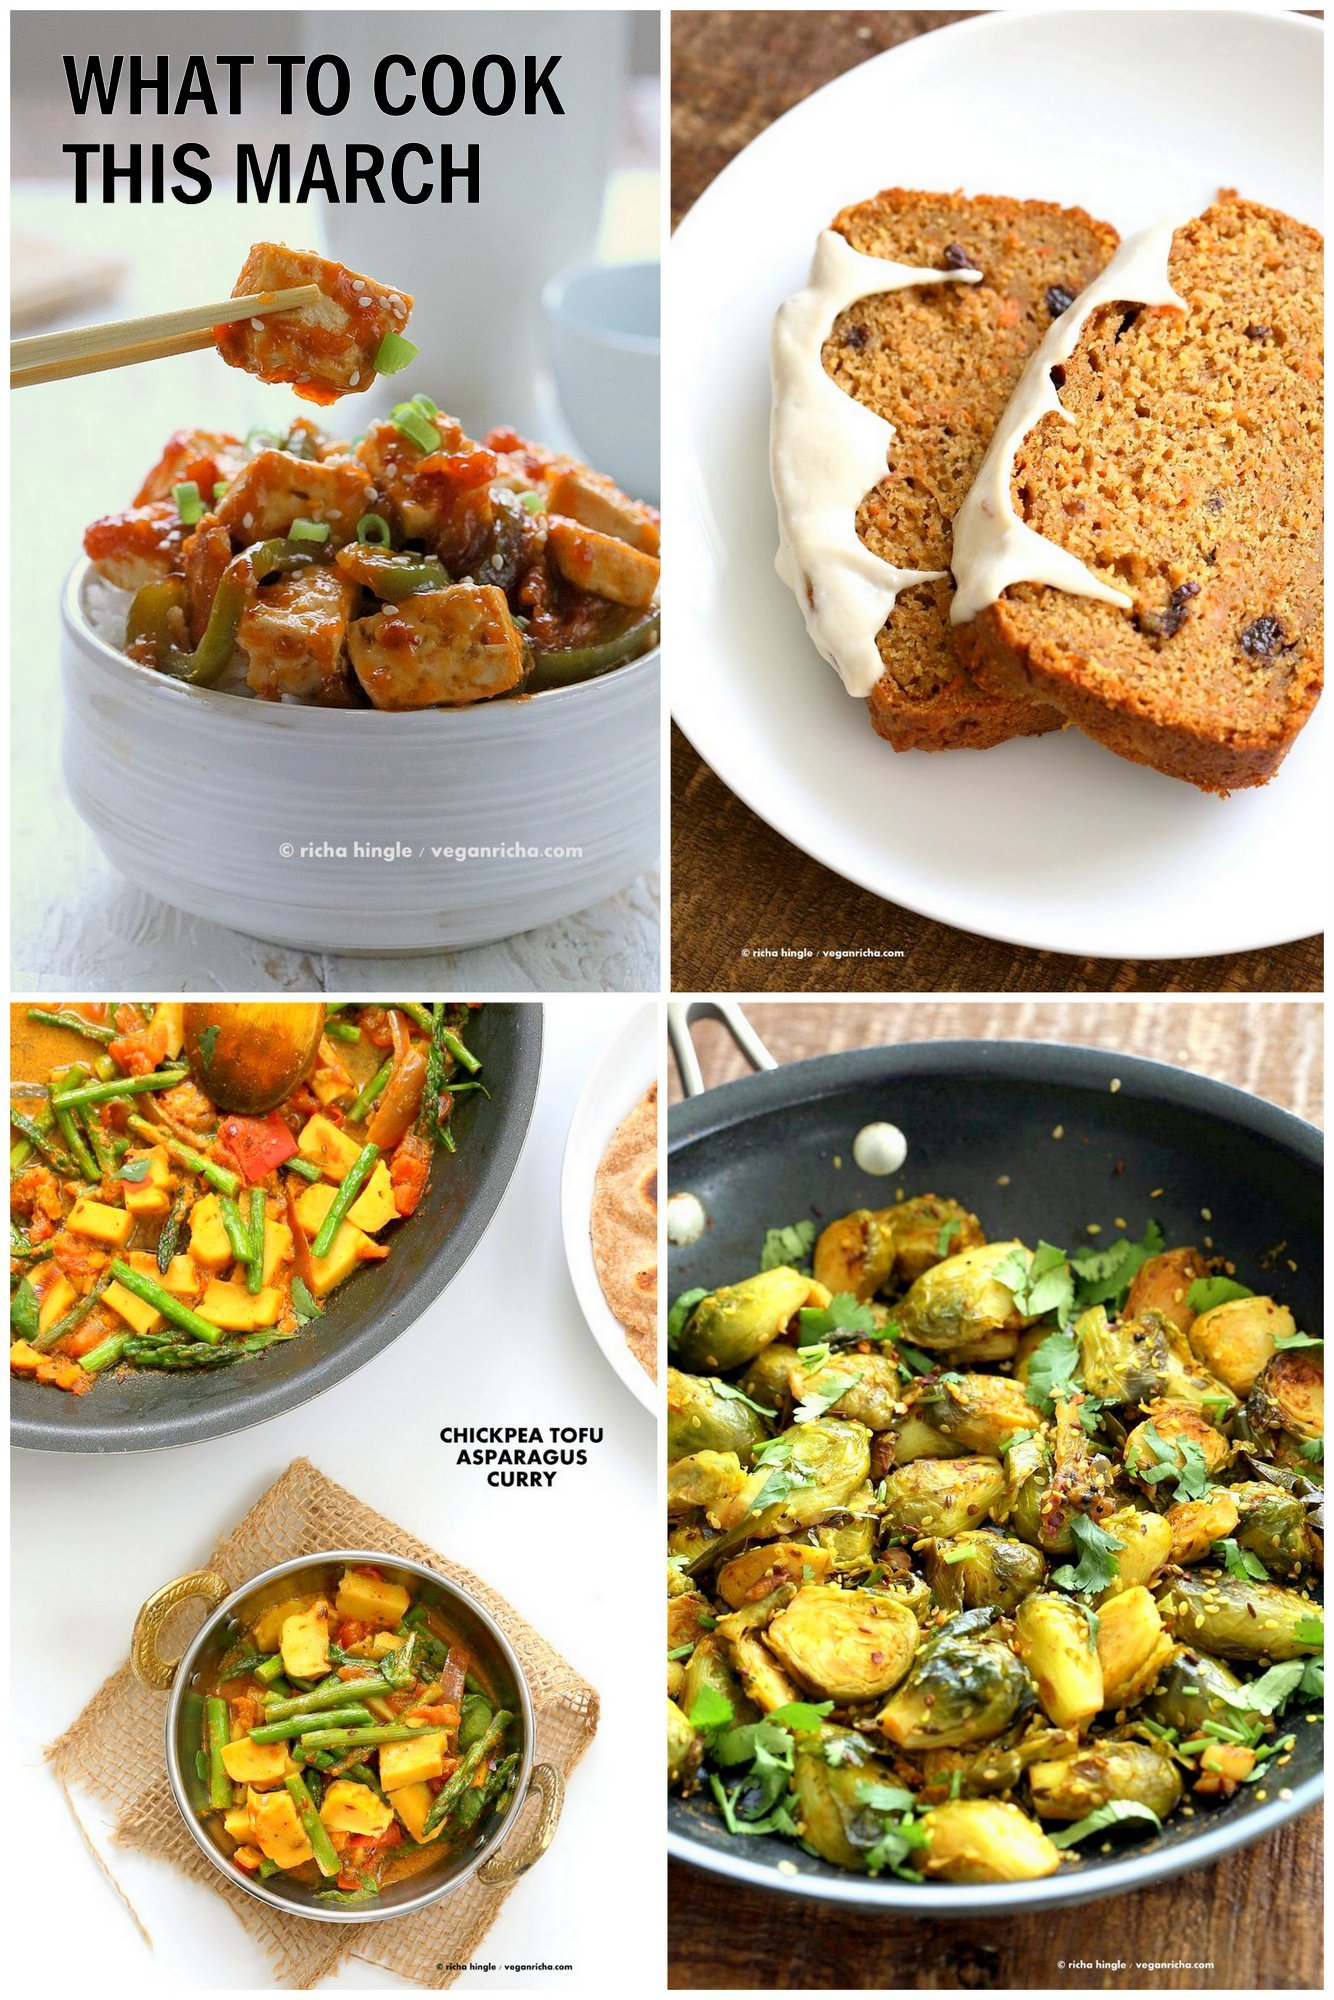 What to cook in March - Asparagus Brussels Sprouts Cabbage Carrots Recipes #vegan #recipes #march #seasonal #veganricha